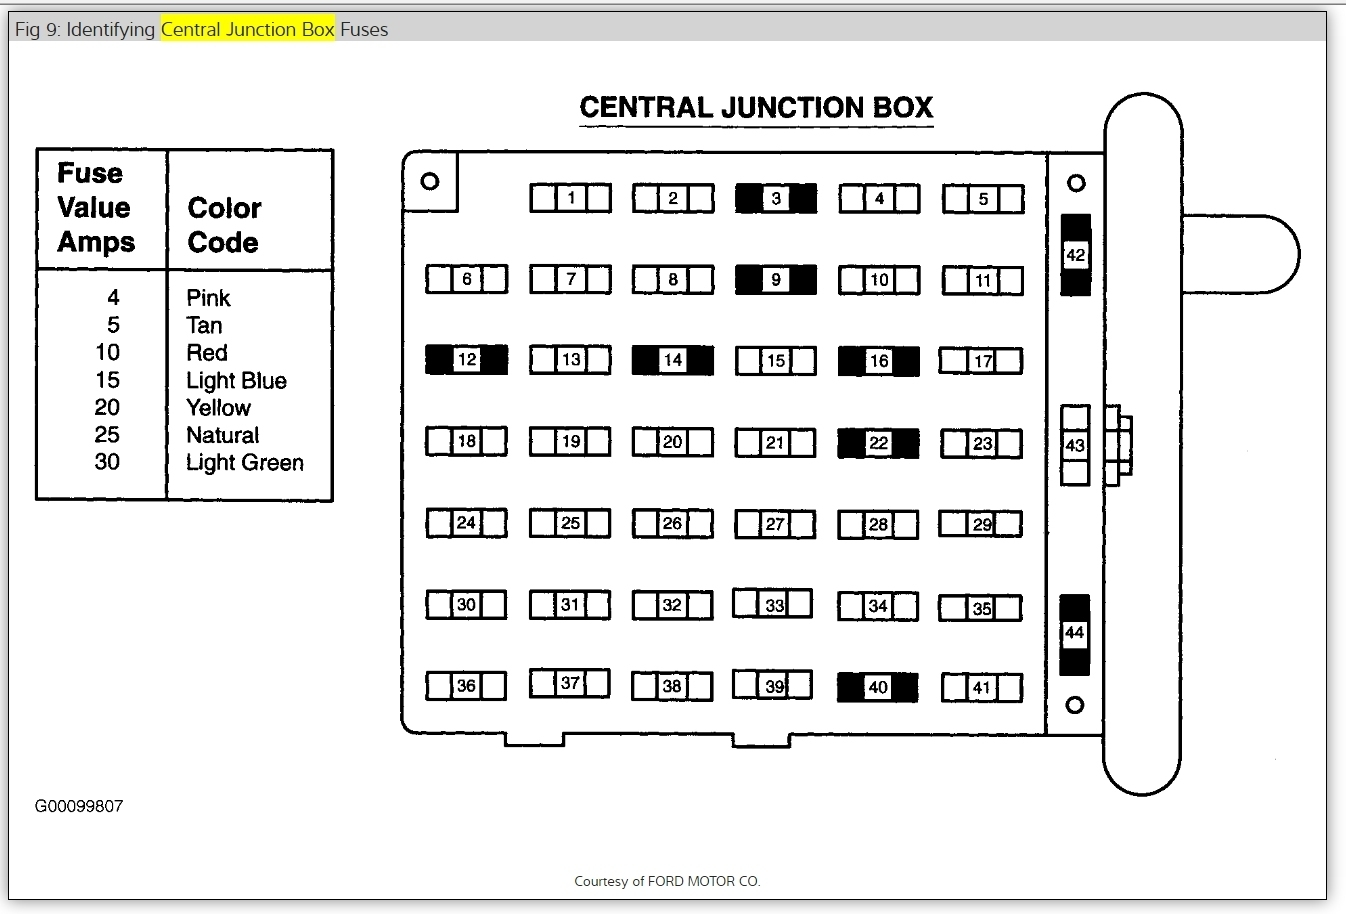 2000 ford mustang fuse box diagram electrical wiring diagrams rh cytrus co 2008 ford mustang fuse box location 2007 ford mustang fuse box location